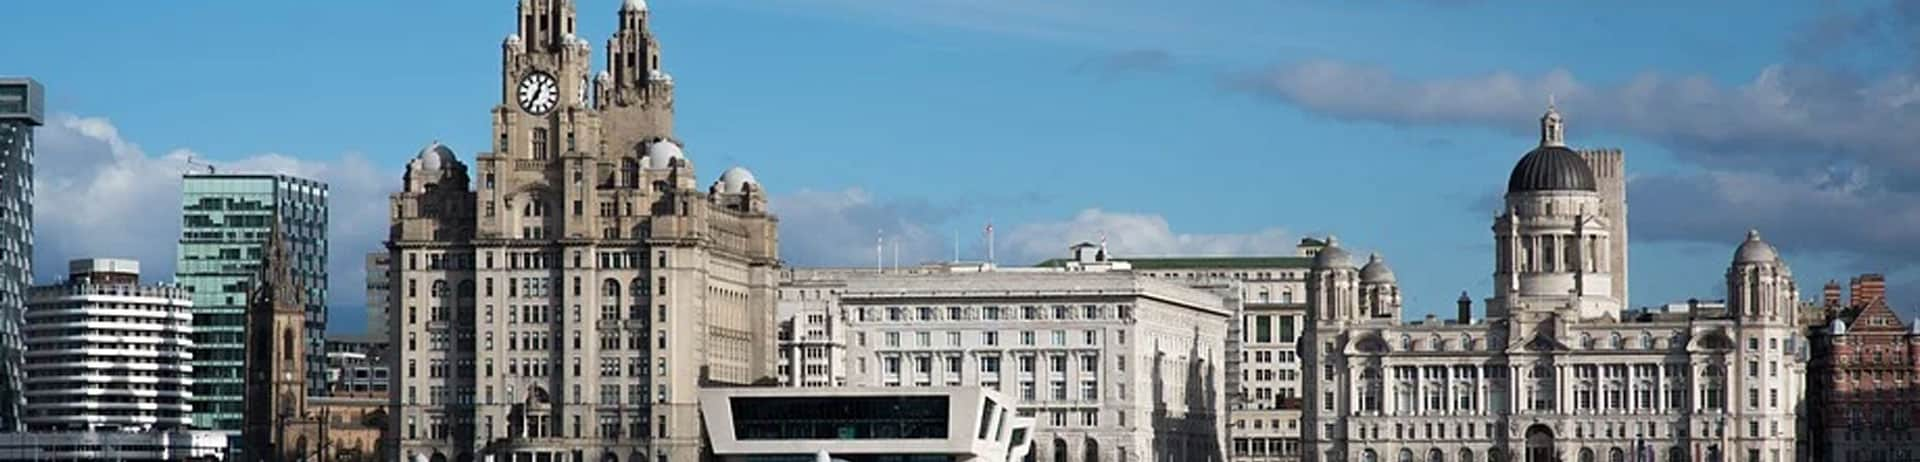 debt collection liverpool Debt Collection Agency Liverpool